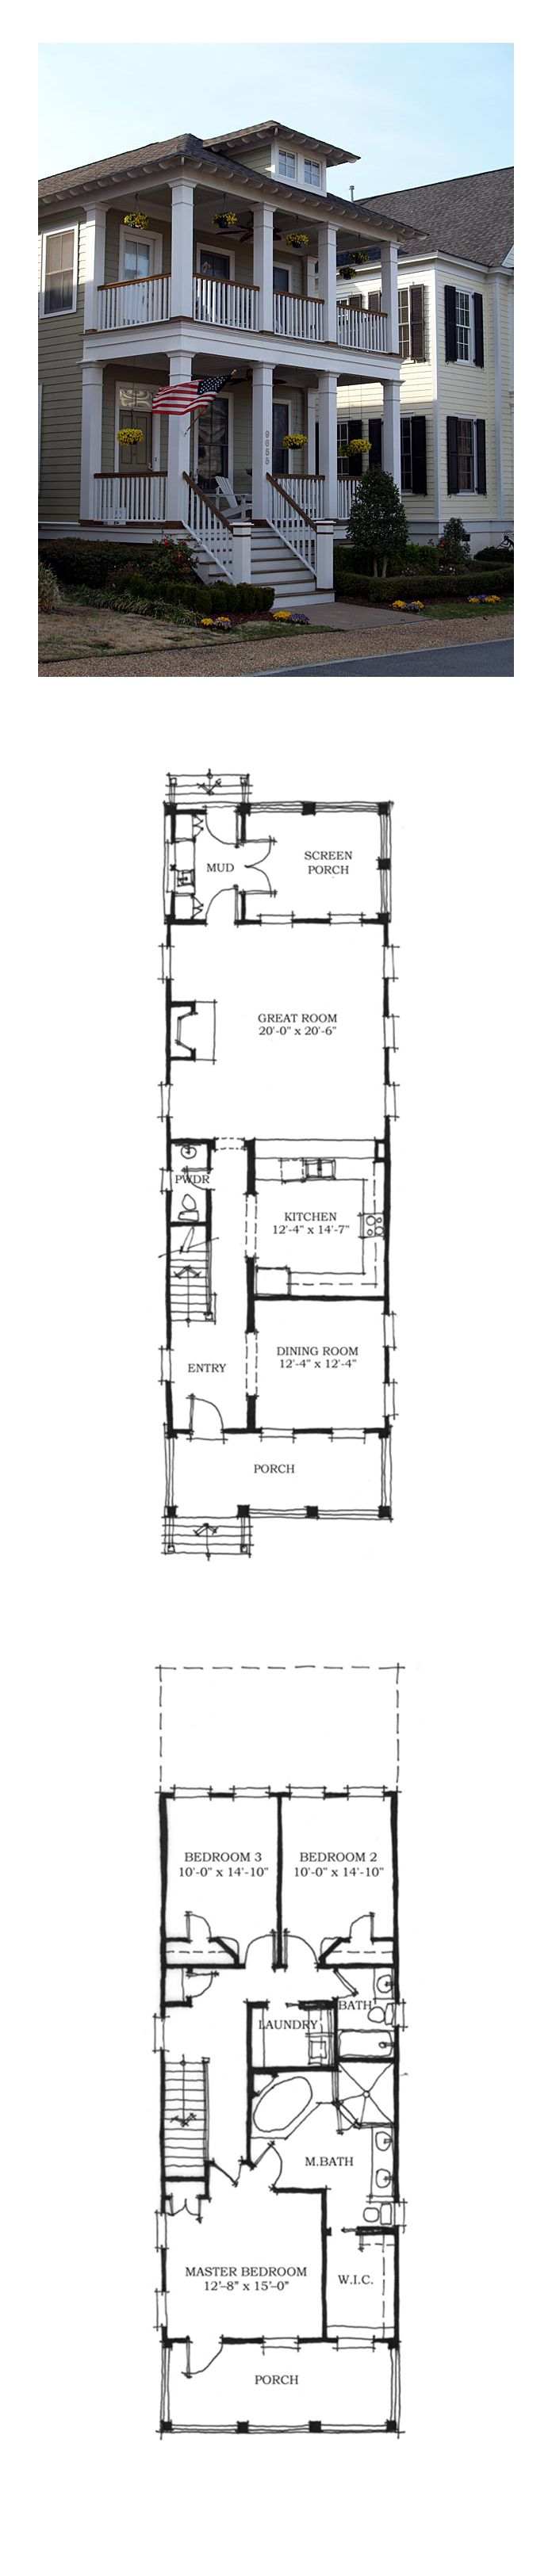 208 best house plans images on pinterest floor plans house